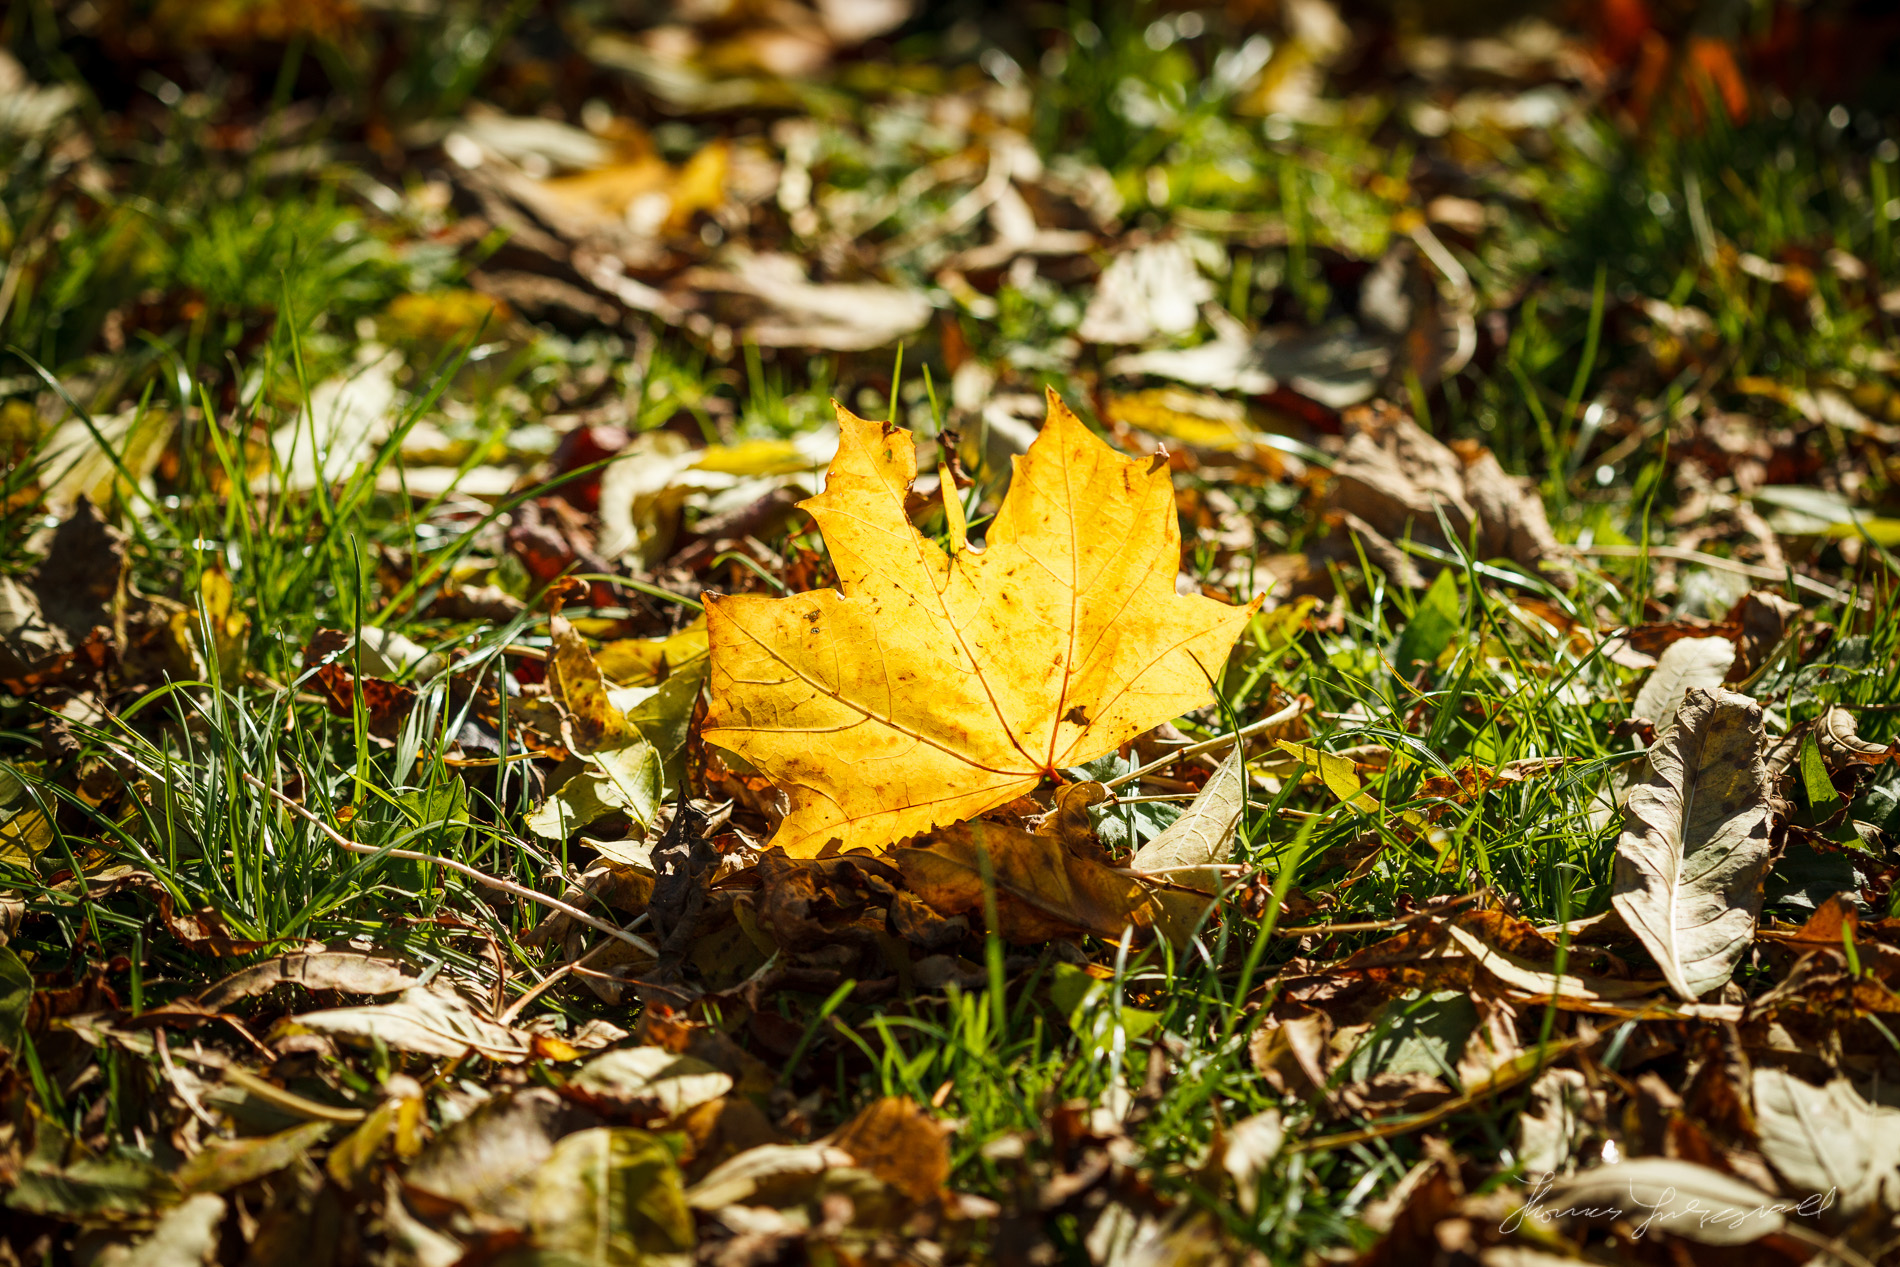 Yellow fallen leaf standing up in the grass